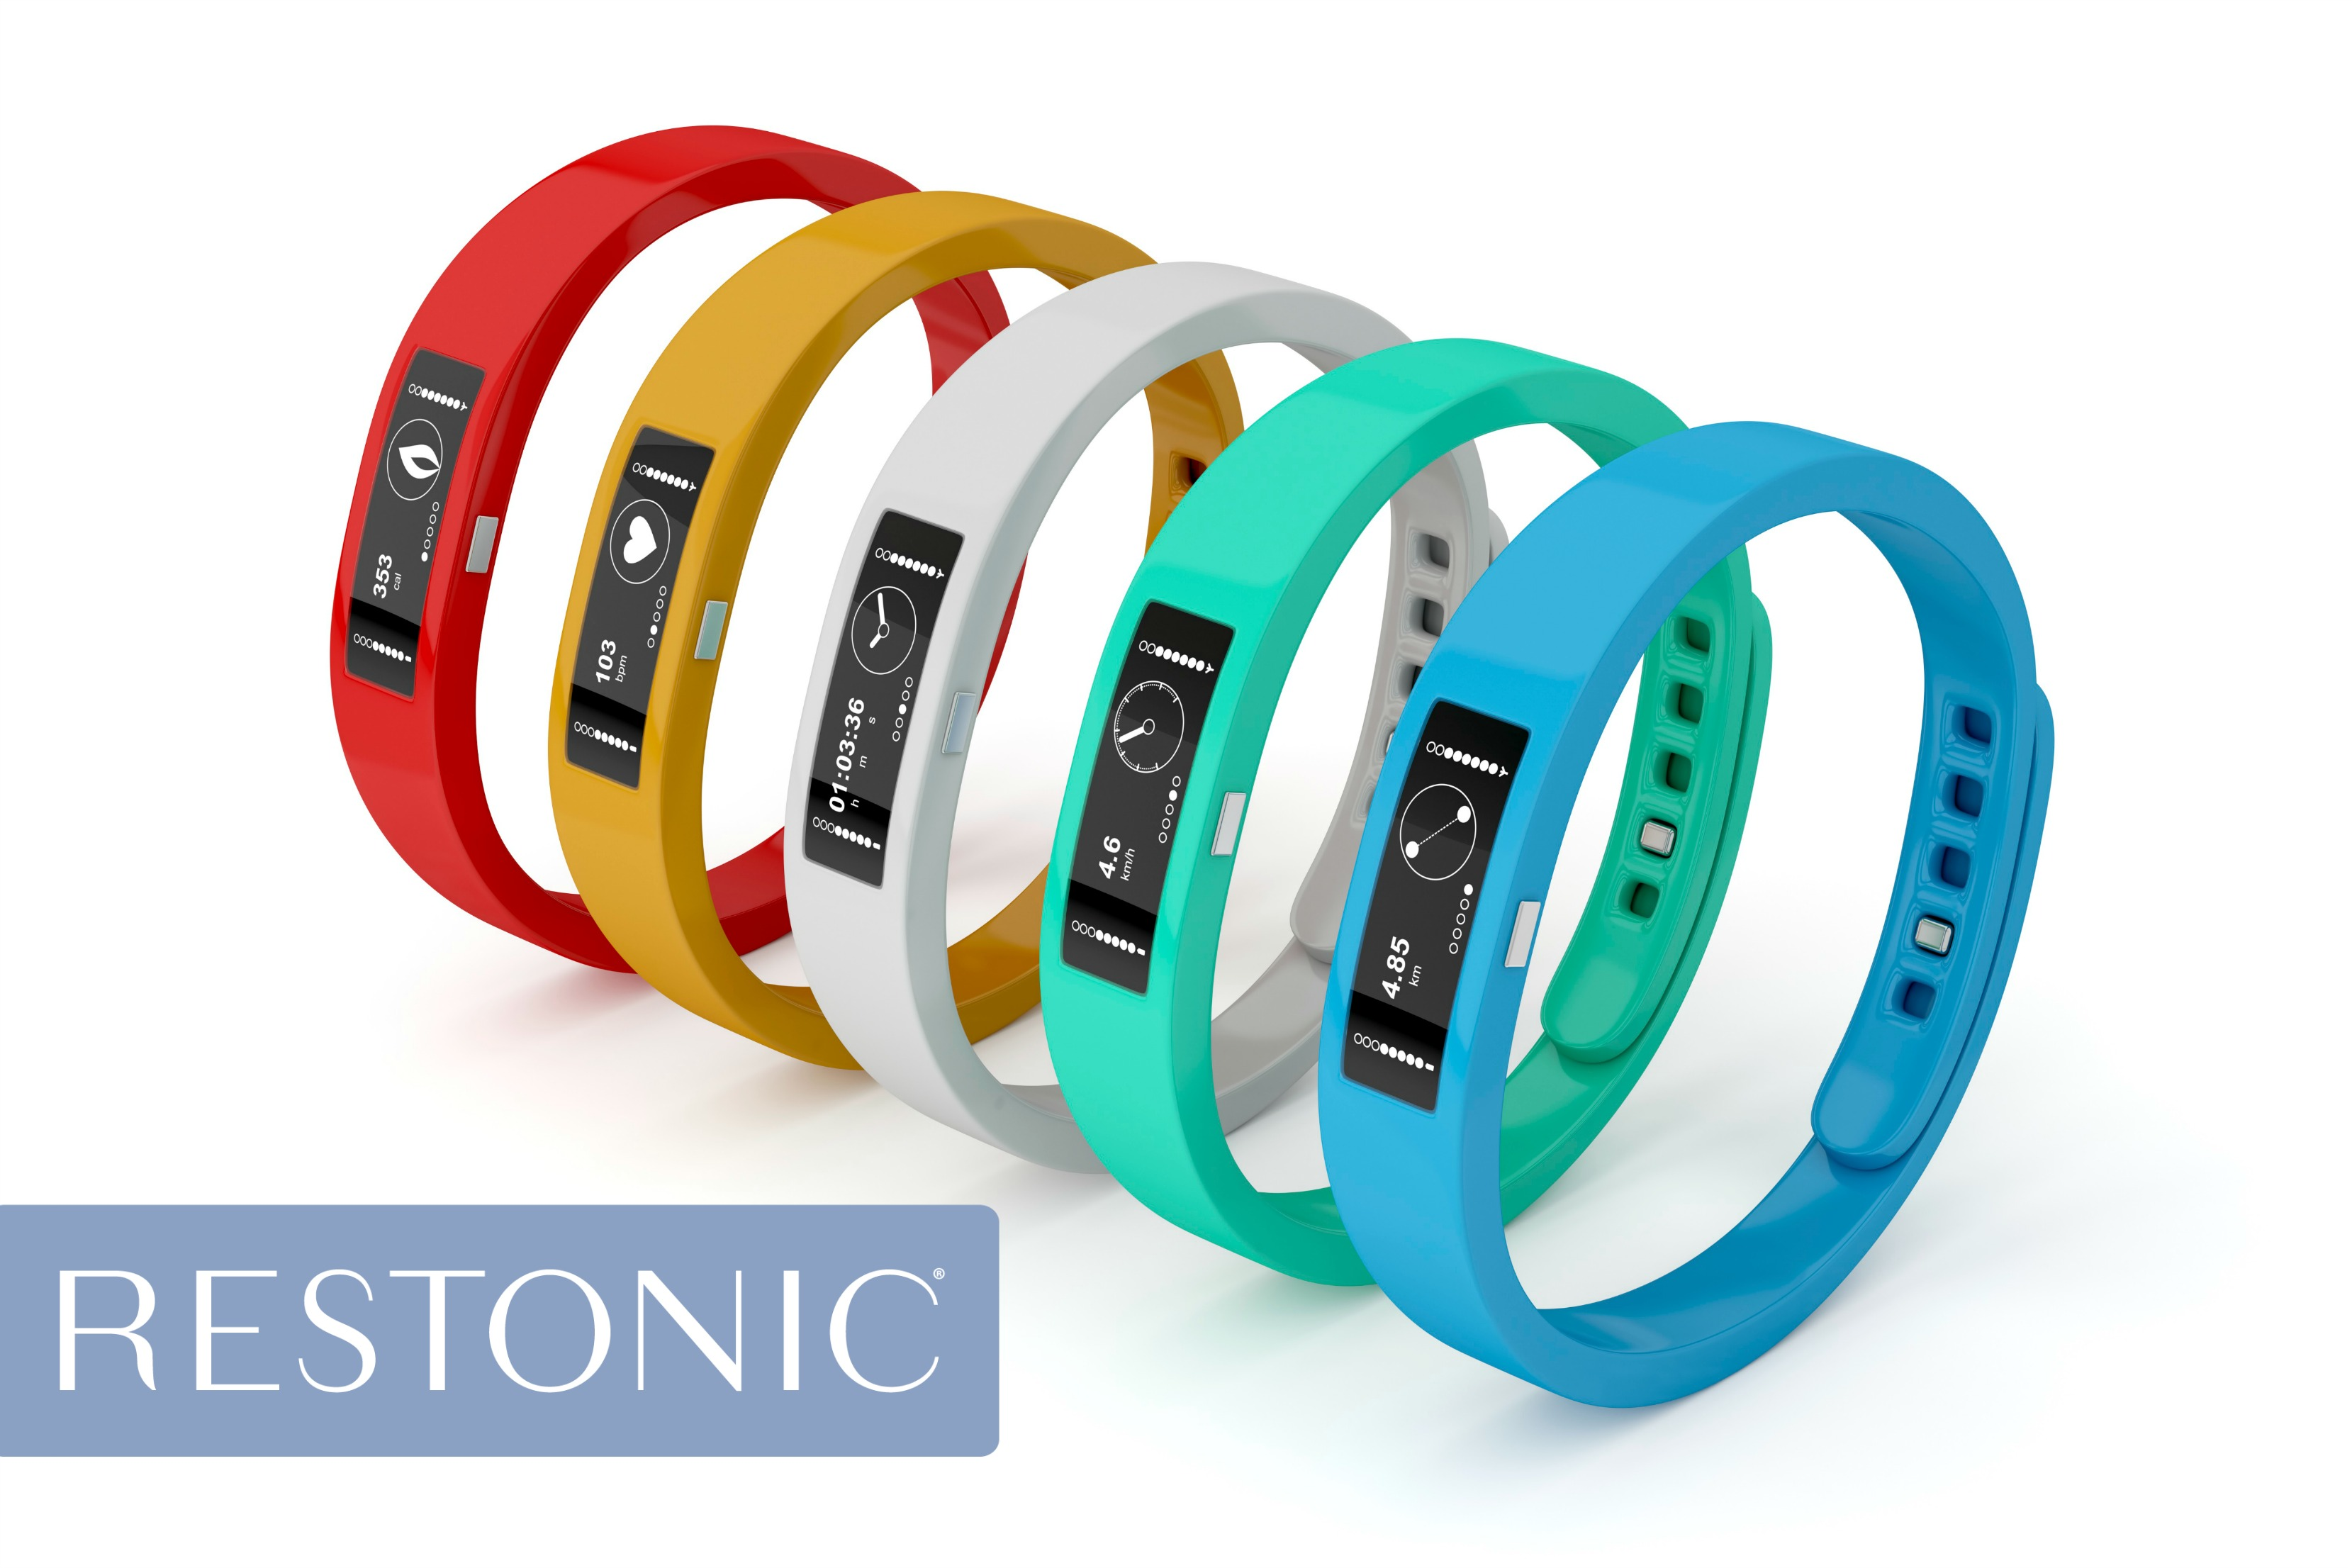 5 colored fitness trackers | Are these devices helping to create good sleep habits?